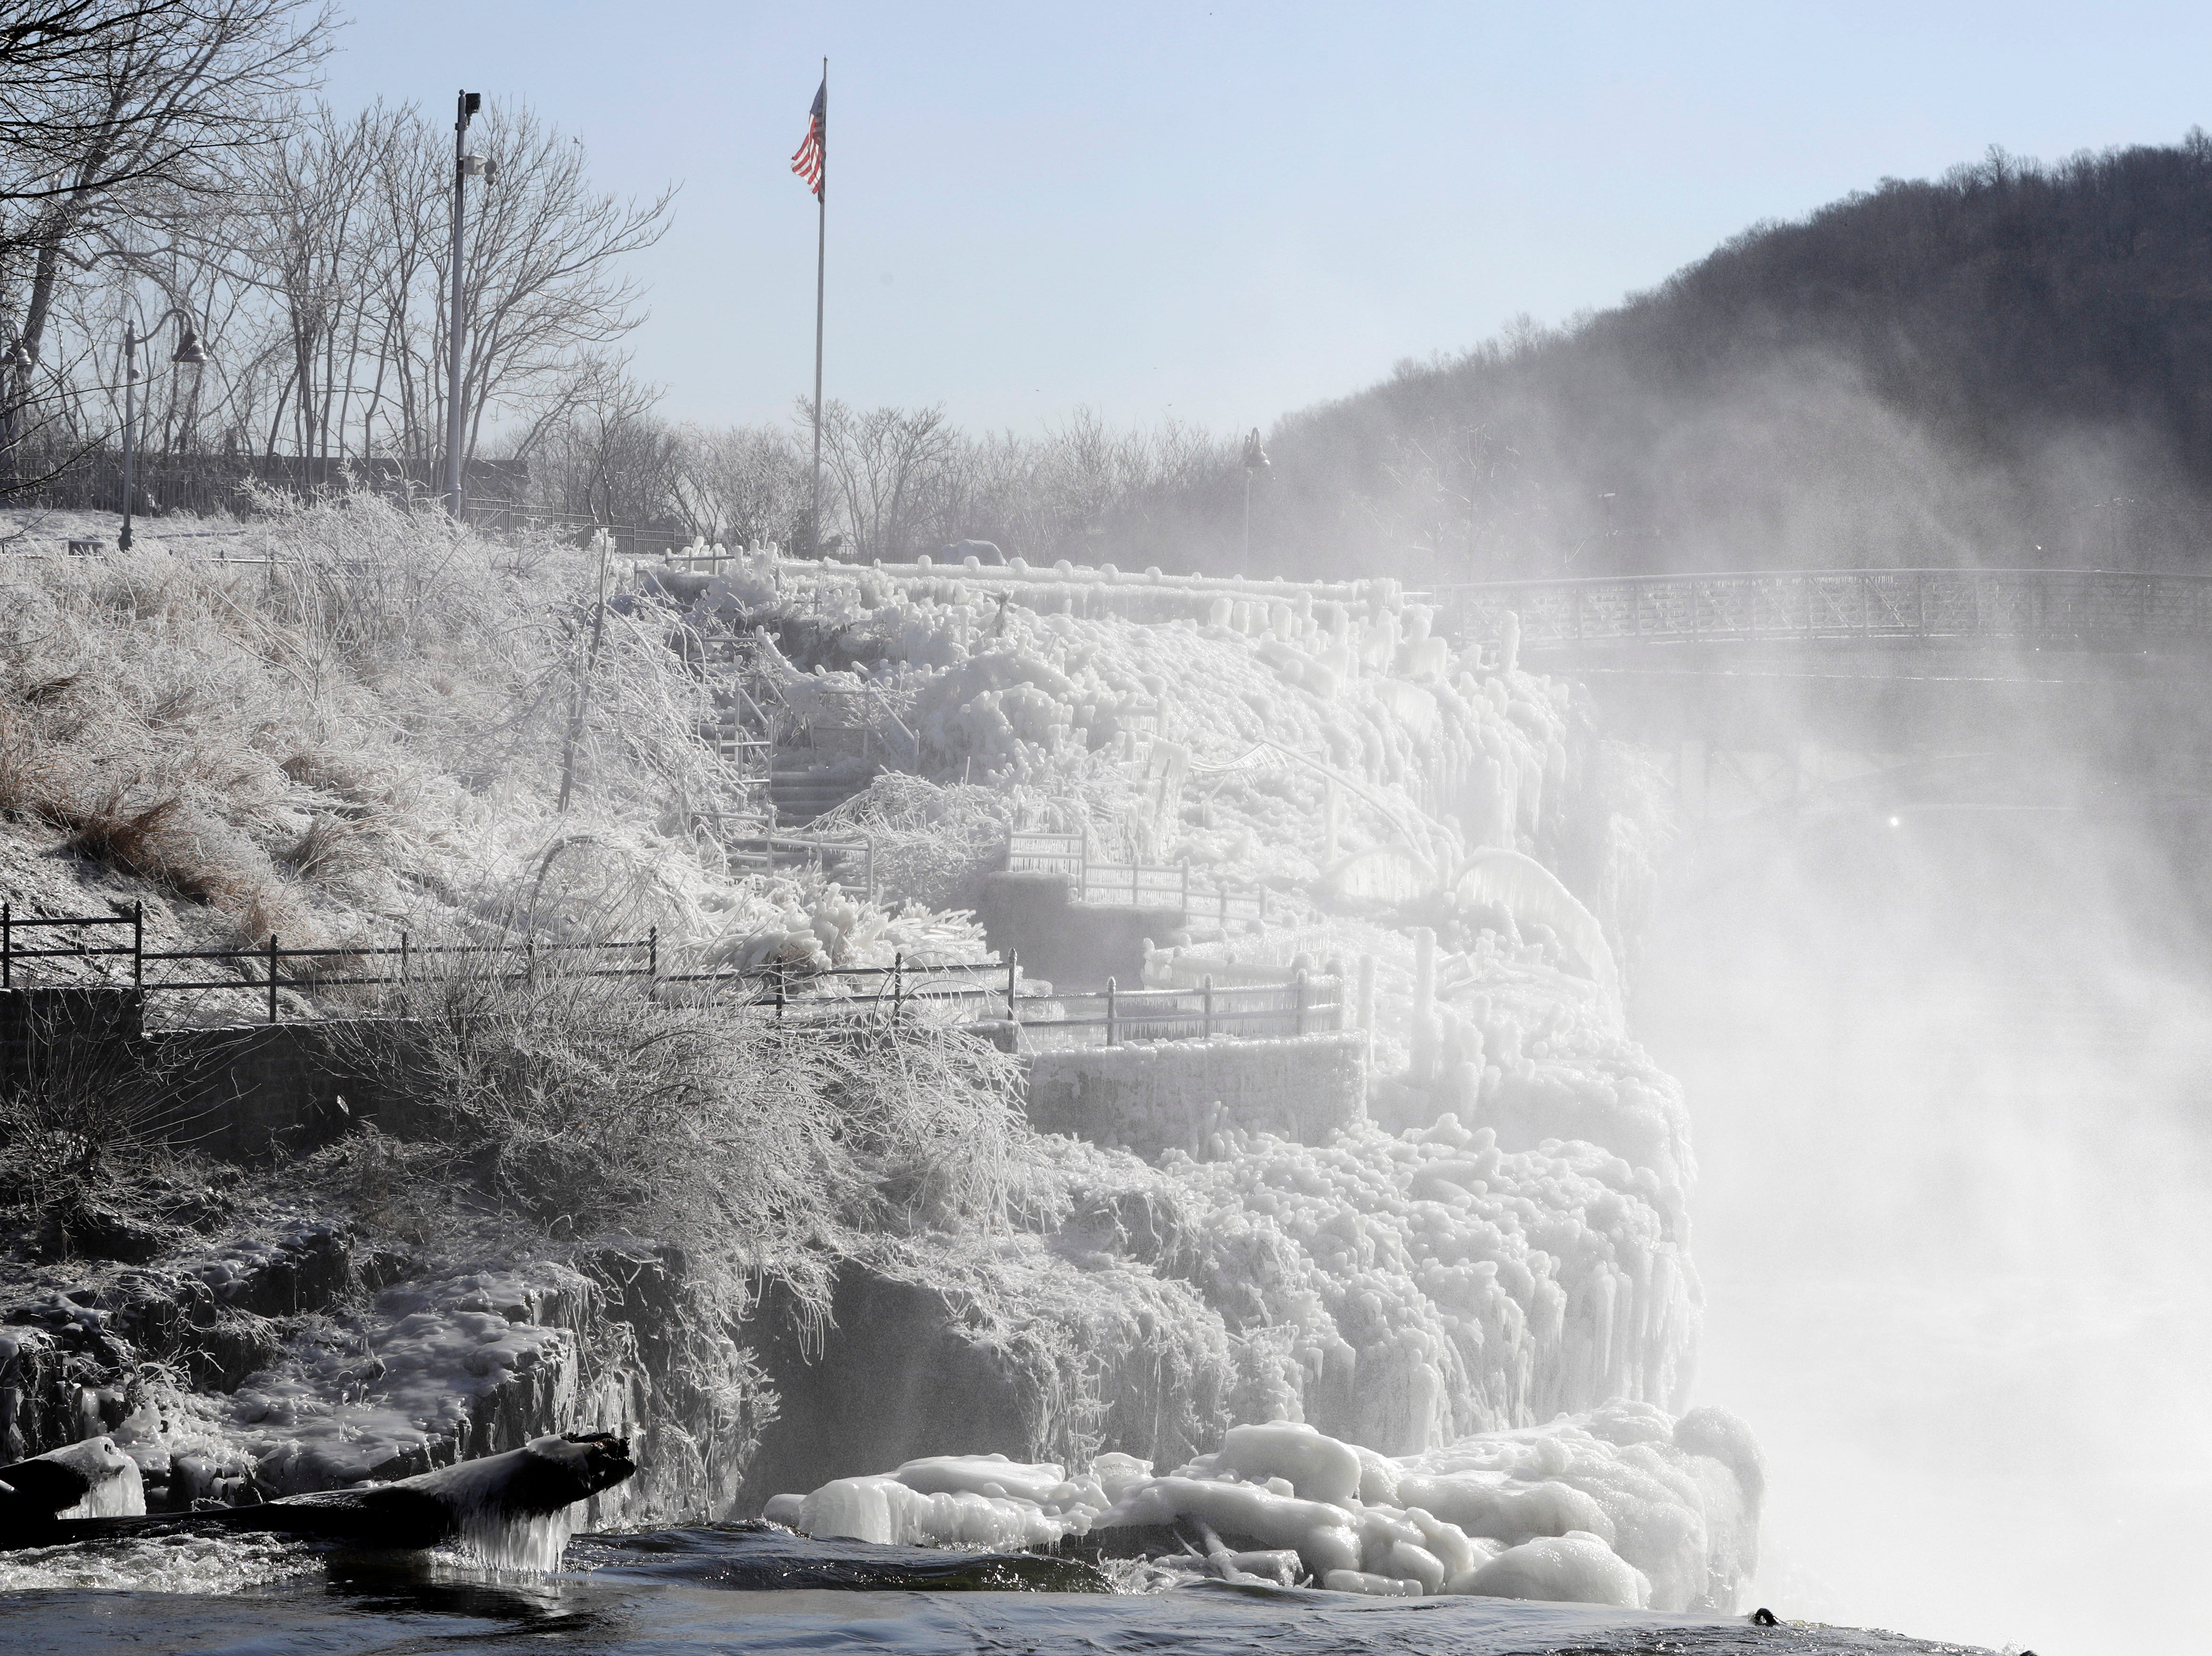 Ice covers the observation area at the Great Falls National Historic Park during a frigid cold winter day, Wednesday, Jan. 30, 2019, in Paterson, N.J. A snowstorm and snow squalls are expected in the afternoon before temperatures continue to dip to evermore frigid lows.